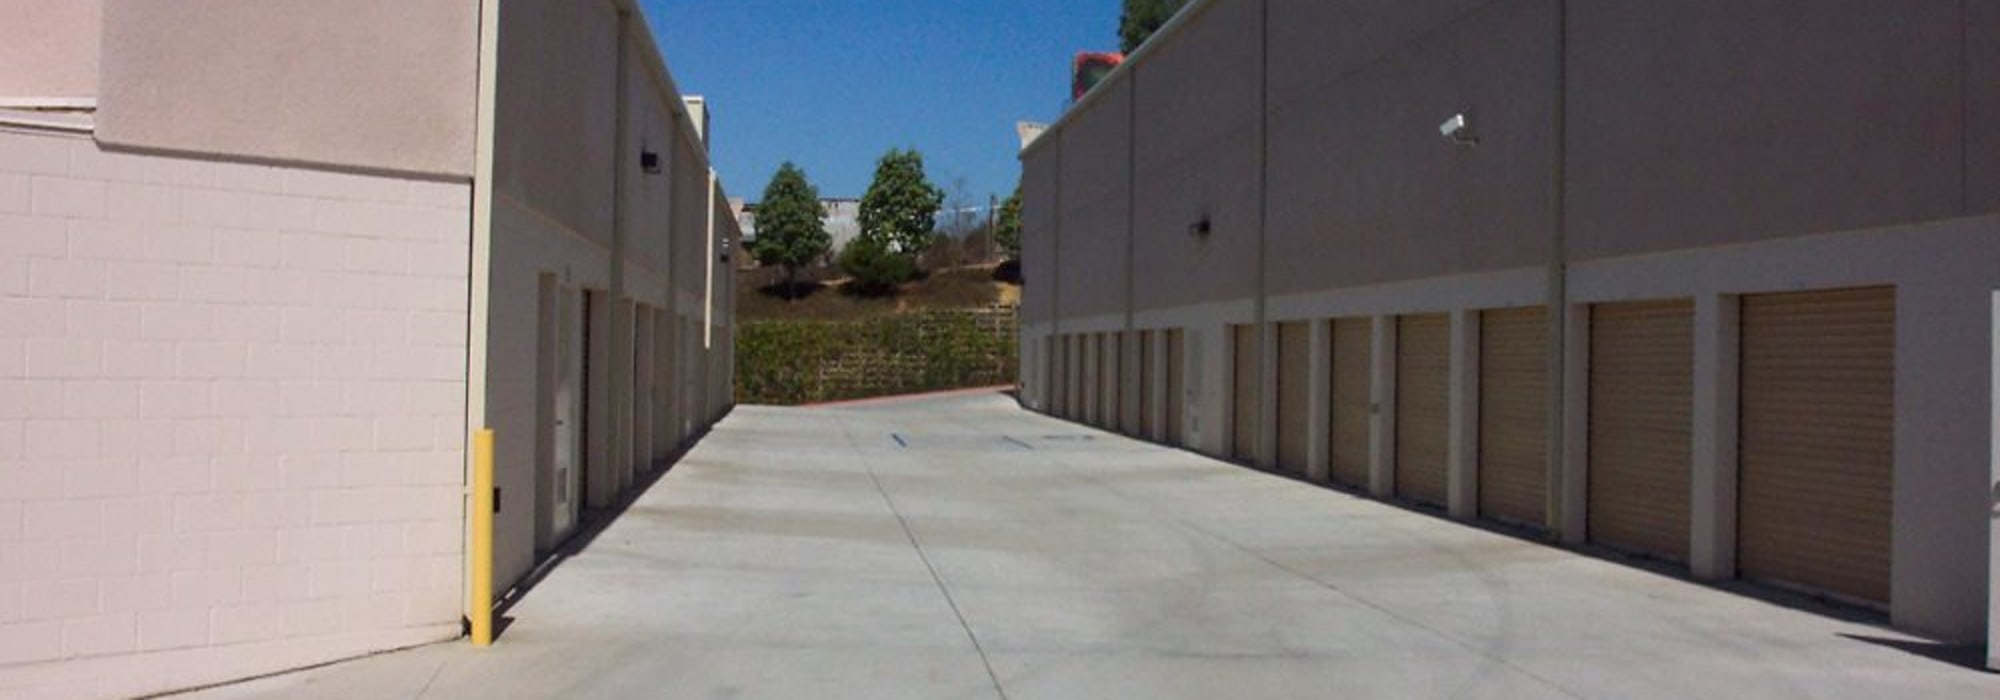 Outdoor units at Golden Triangle Self Storage in San Diego, California